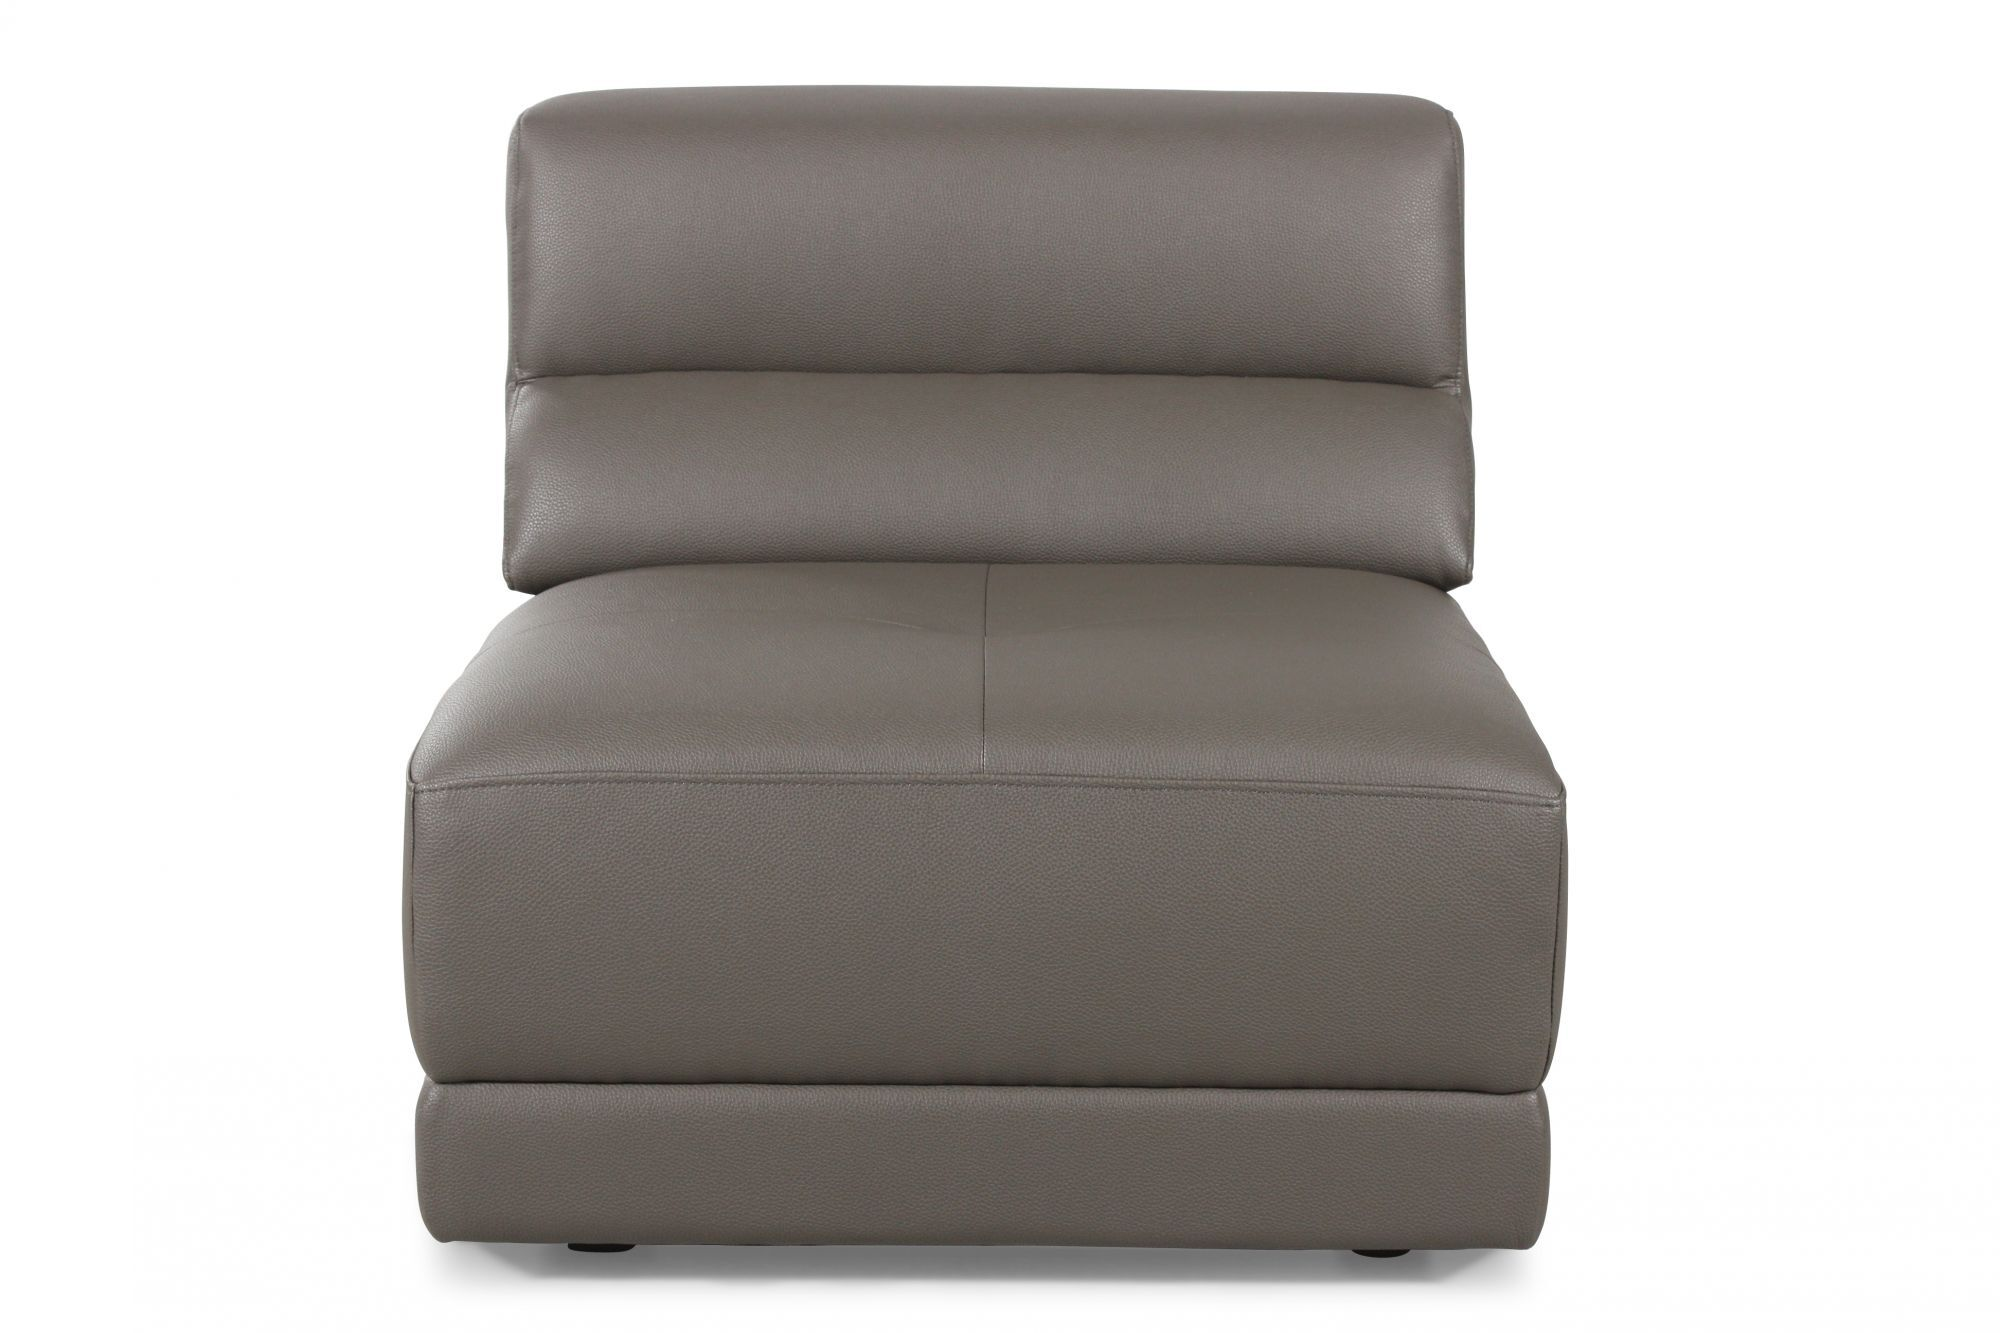 contemporary armless chair in dove gray mathis brothers furniture rh mathisbrothers com